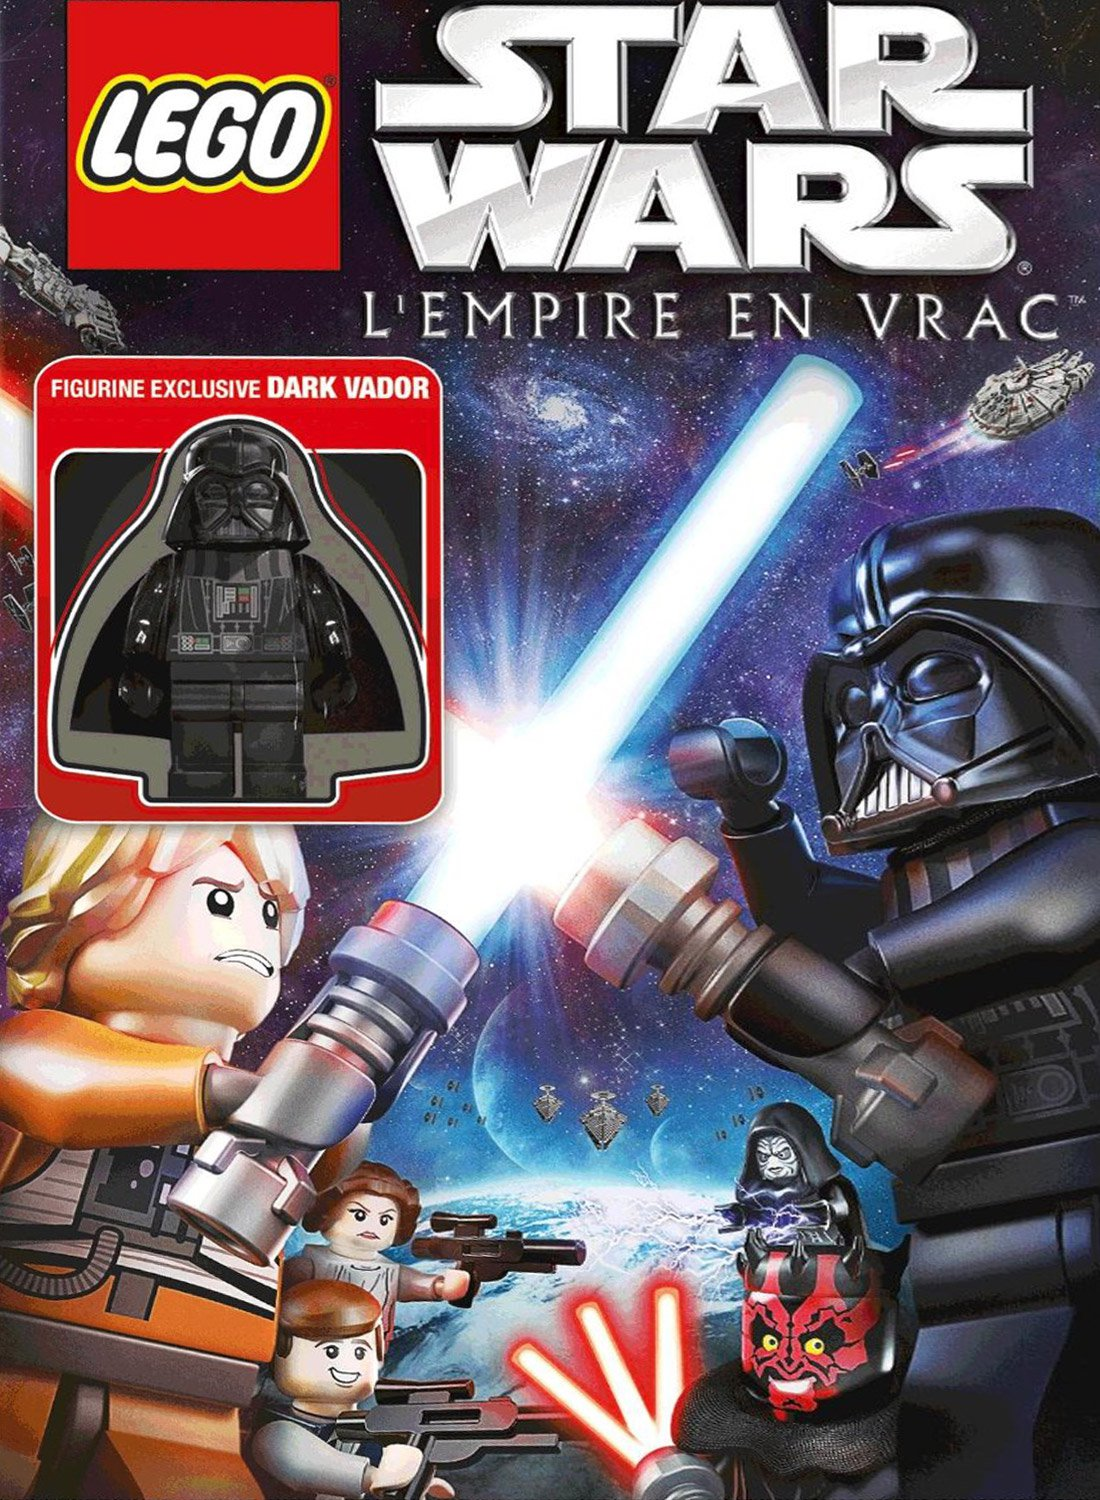 Lego Star Wars 2 : L'empire en vrac